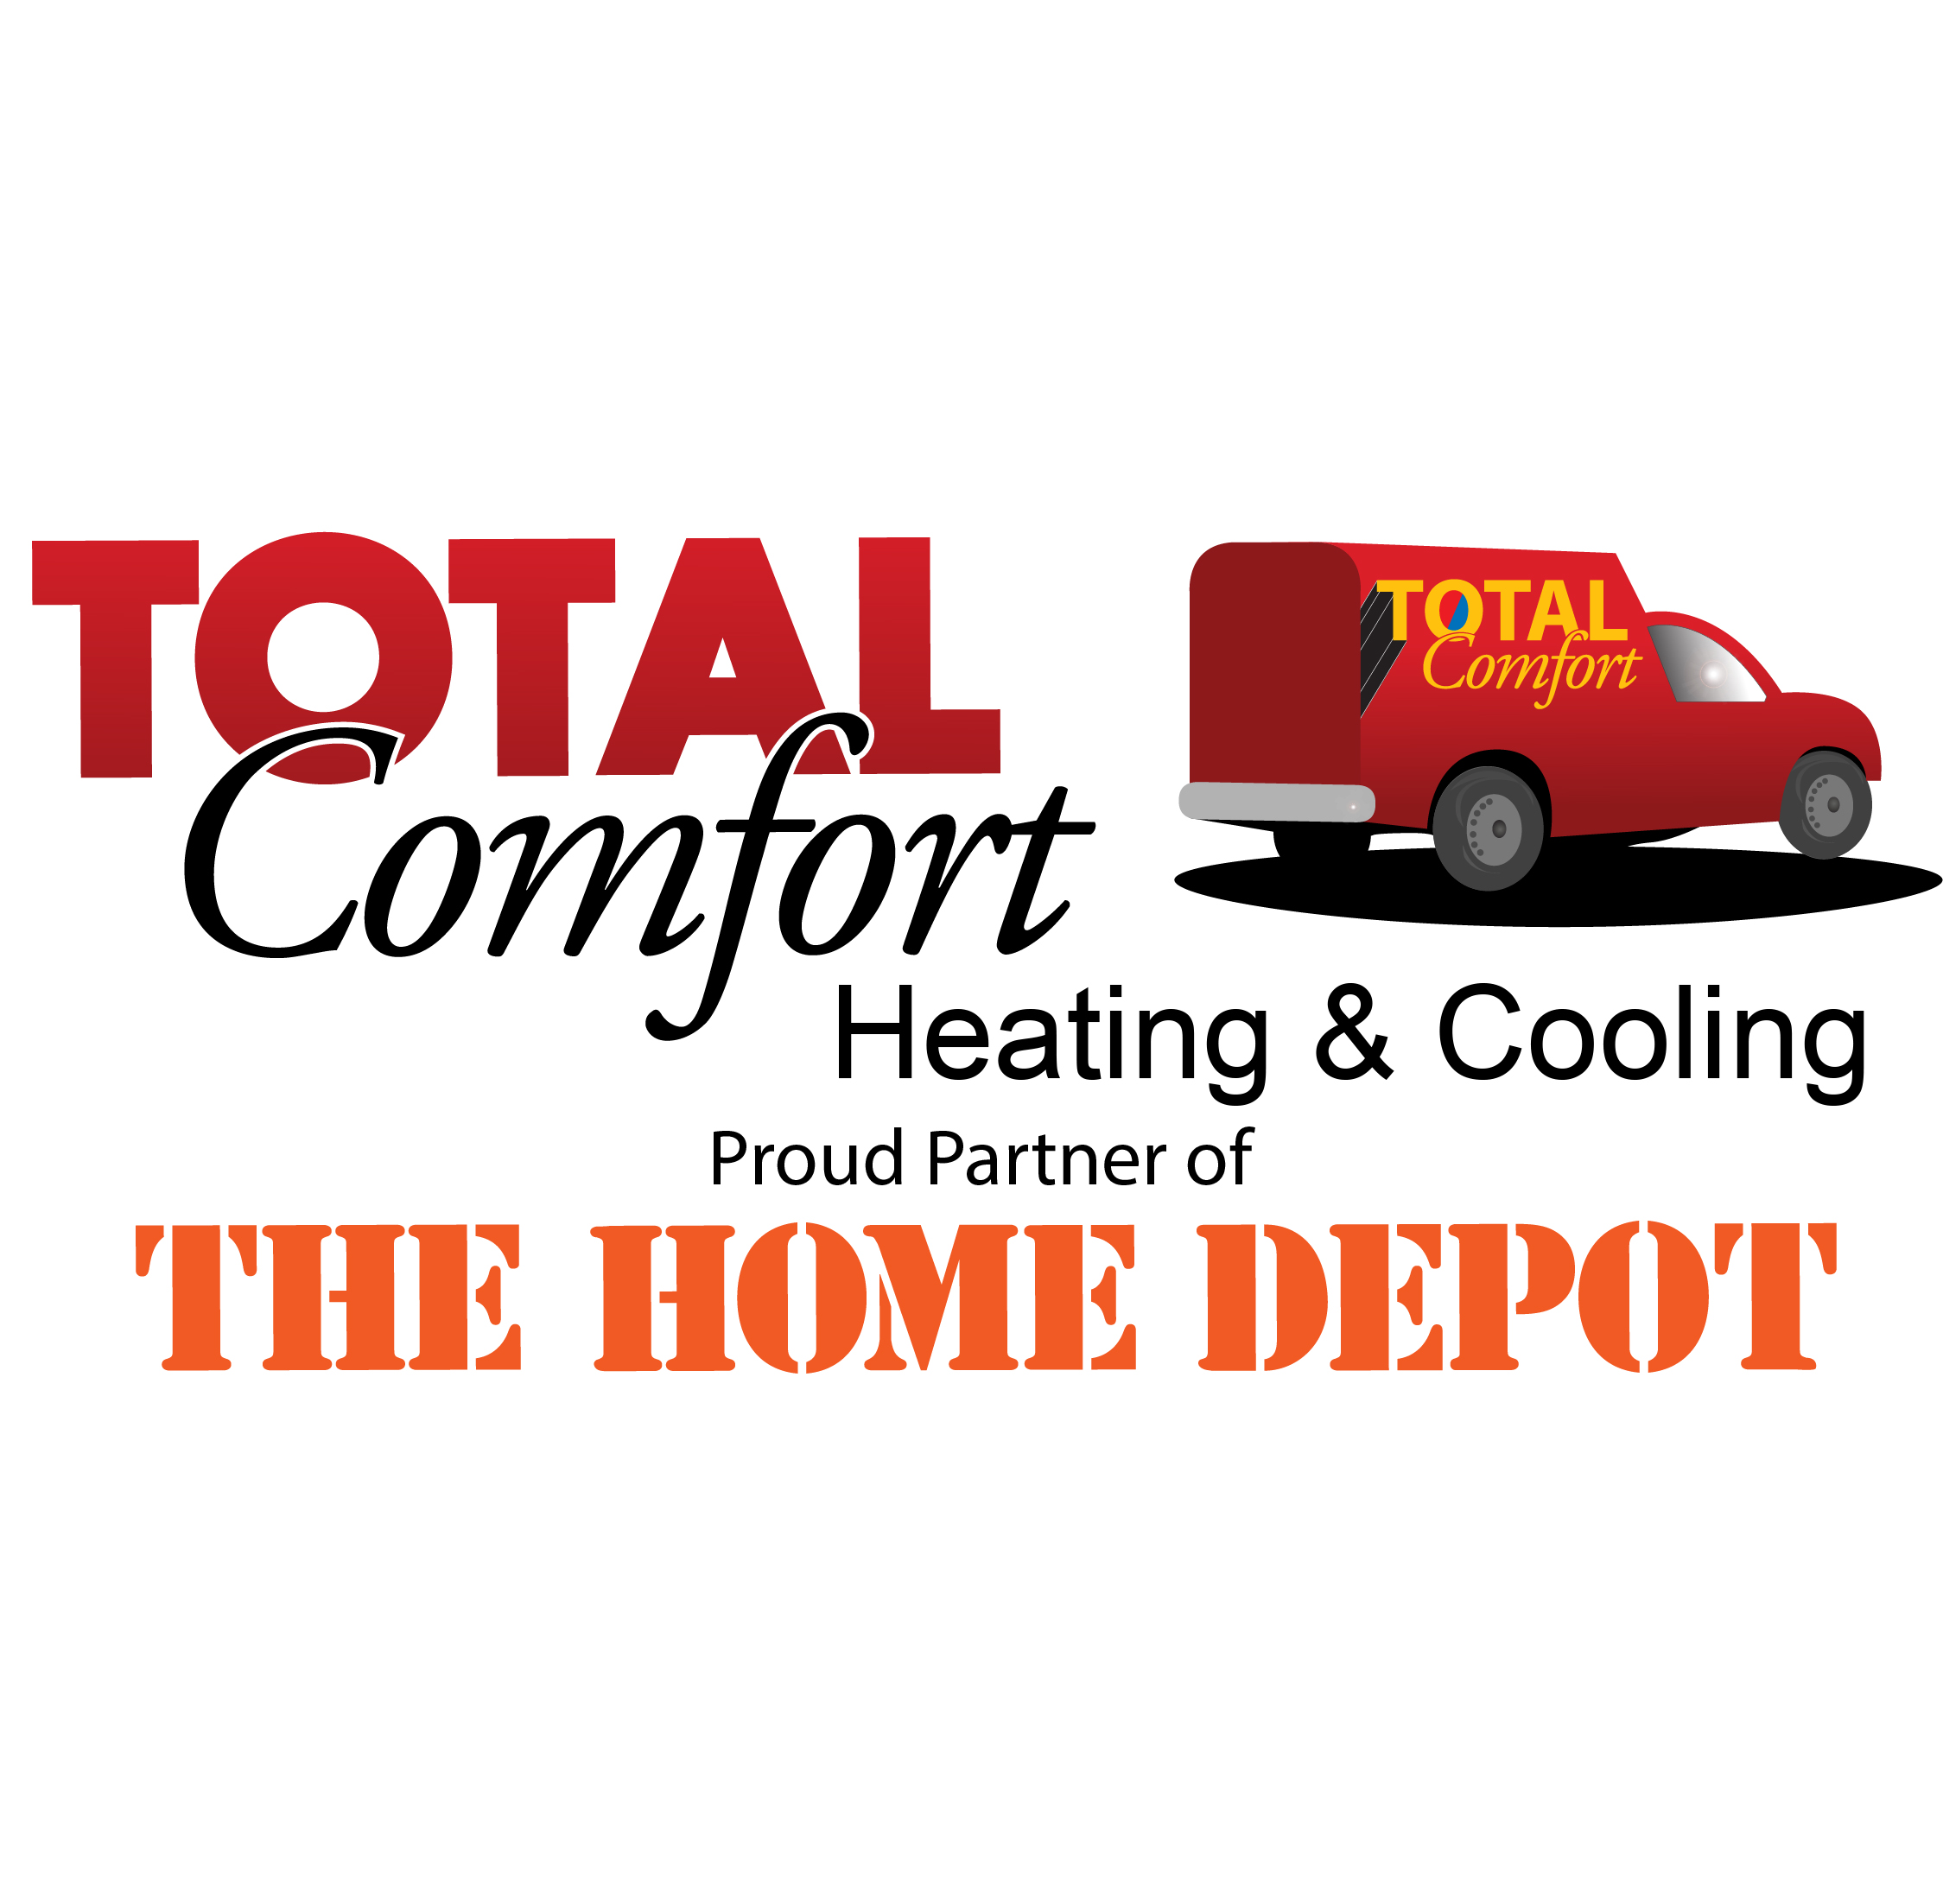 Total Comfort Heating & Cooling